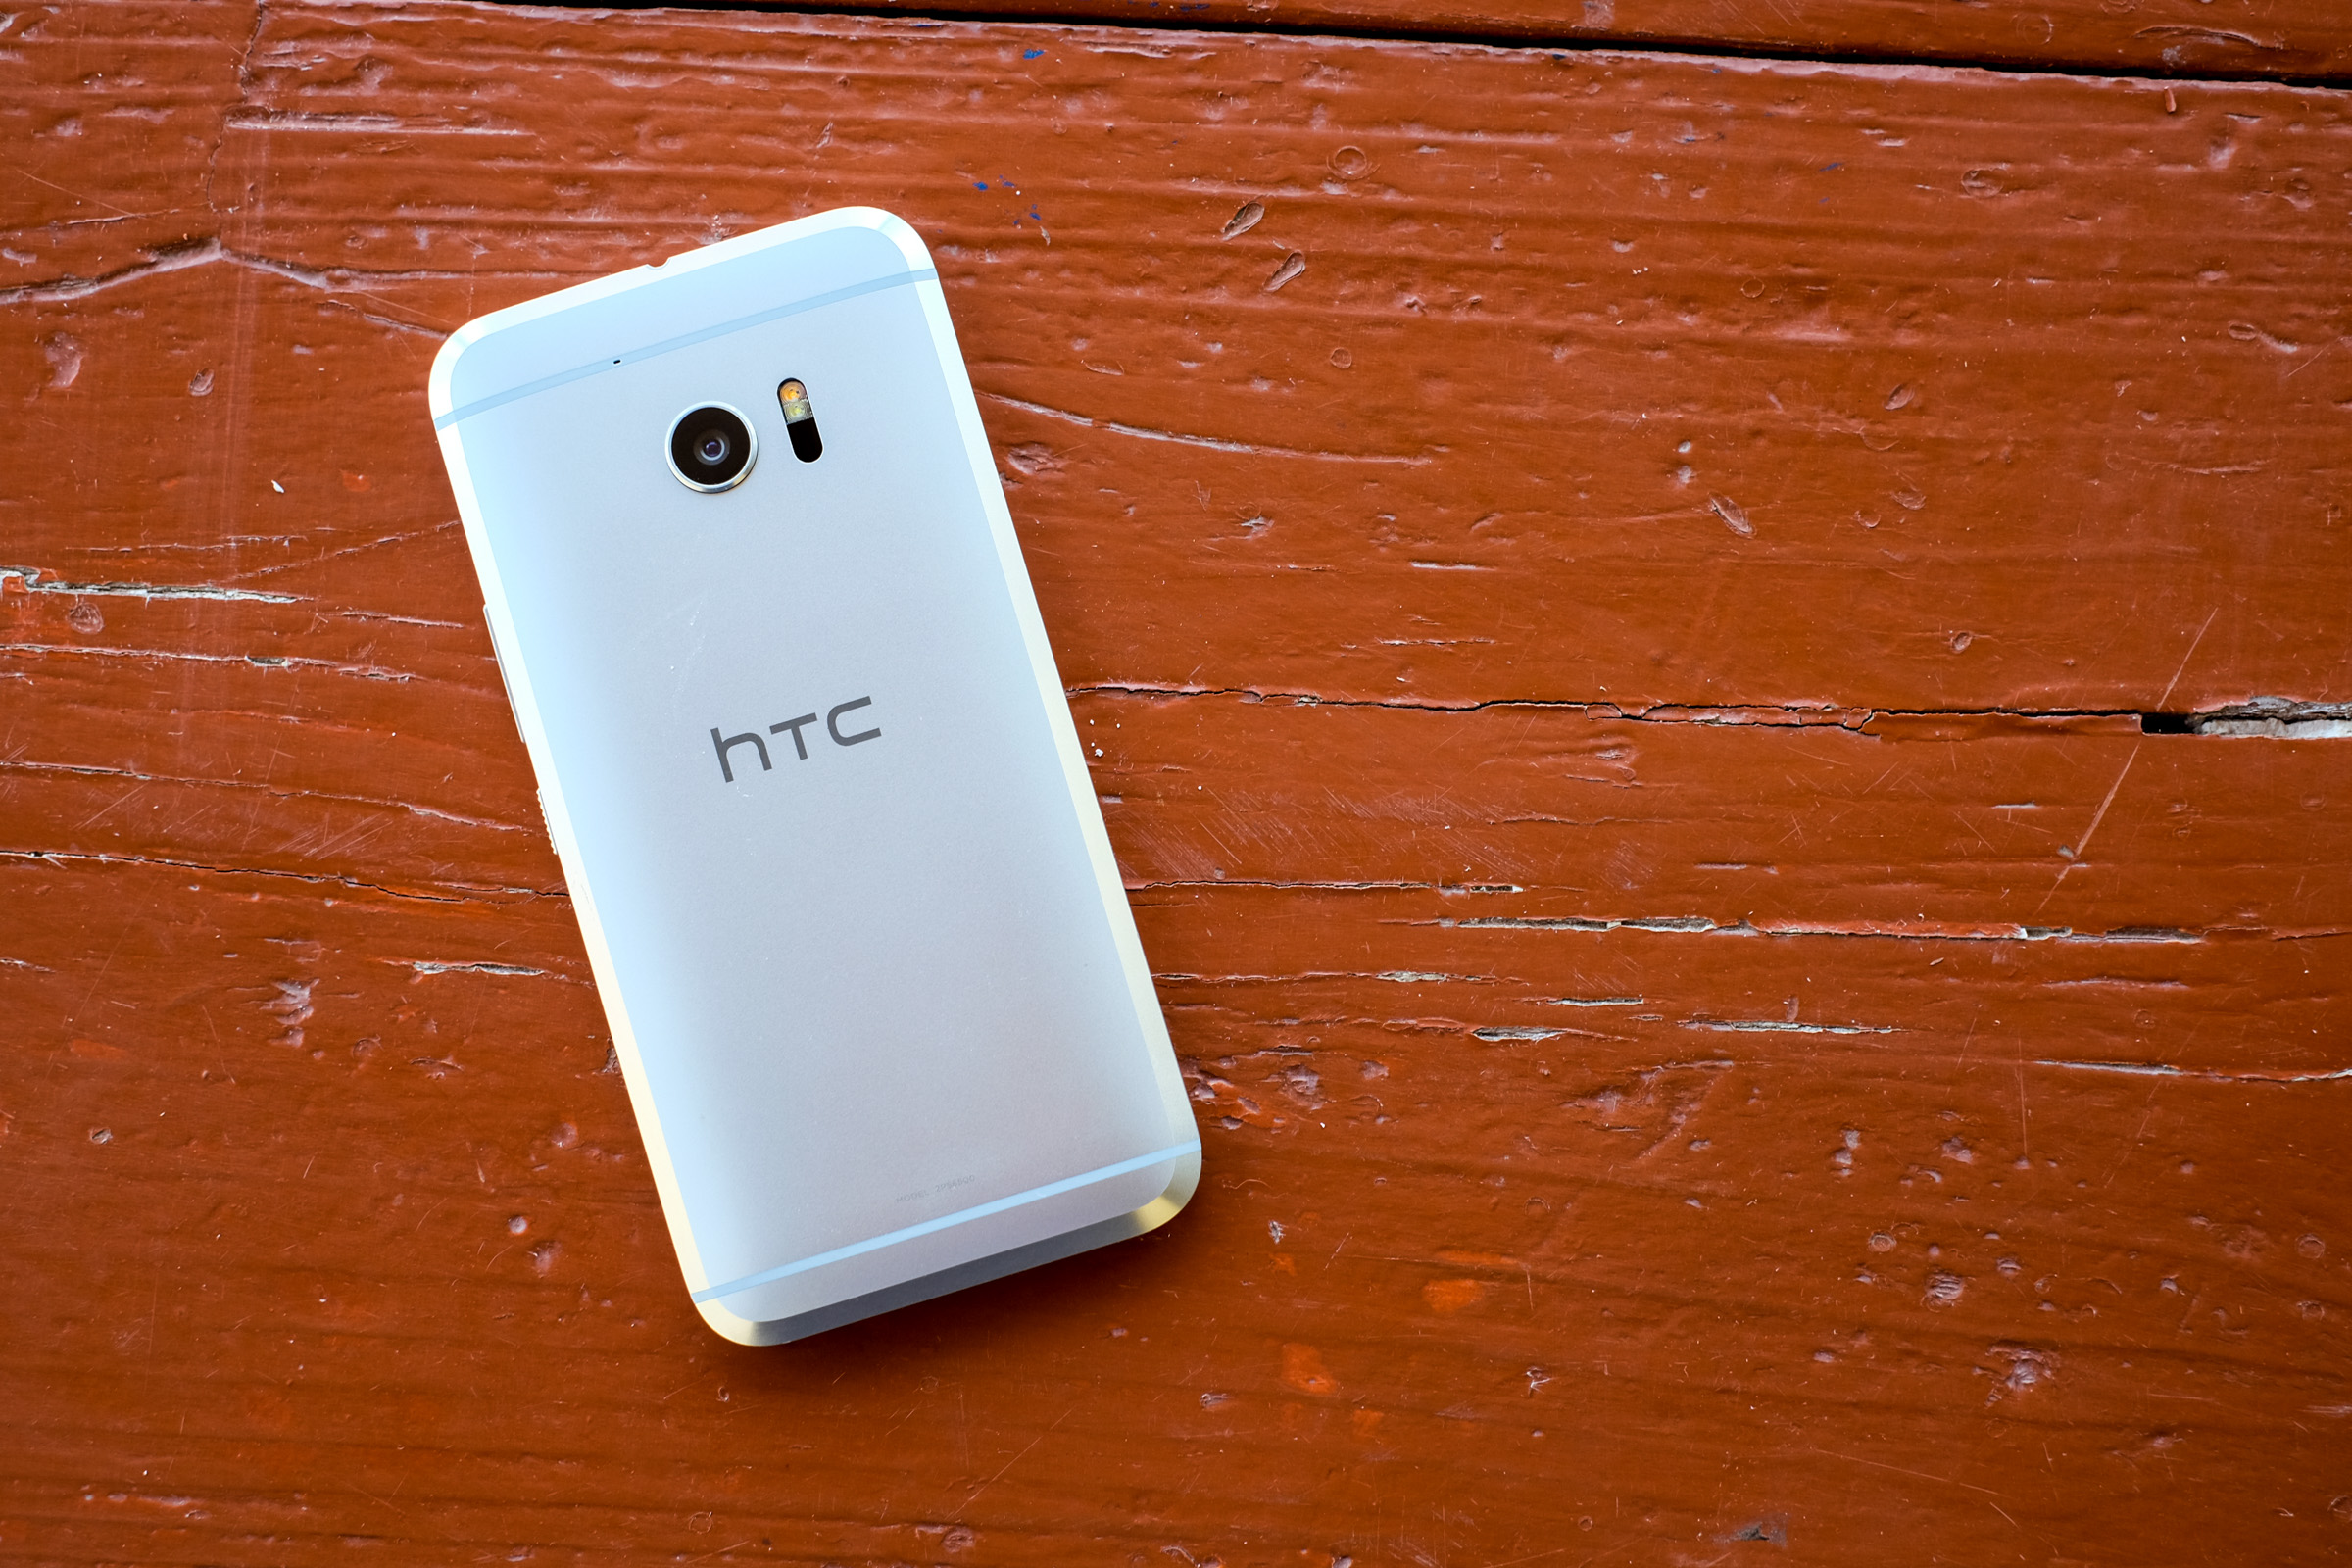 HTC flagship smartphone HTC 10.